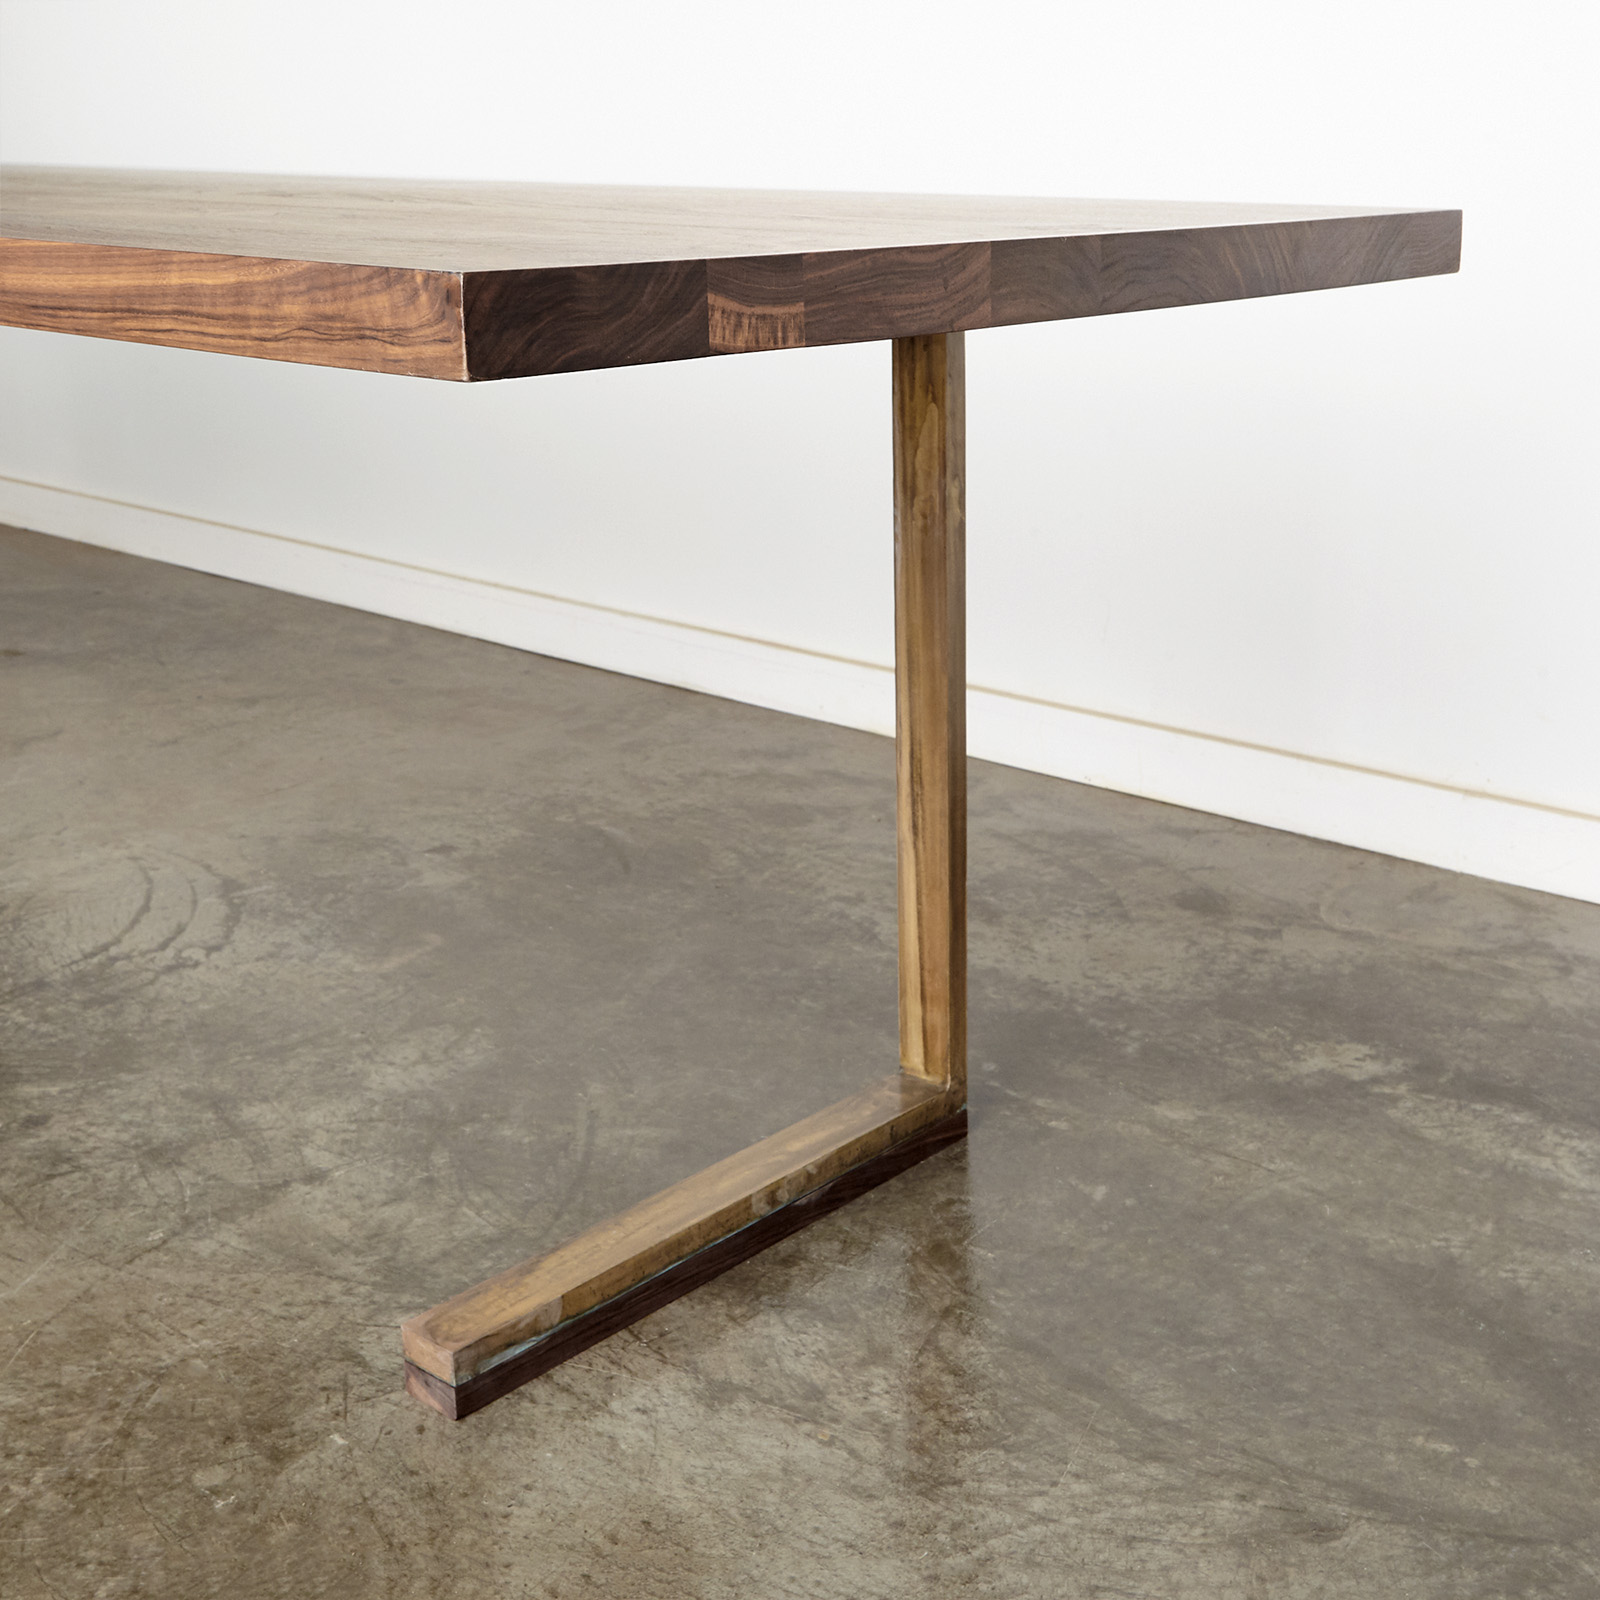 STAY_patch_table_001_008.jpg